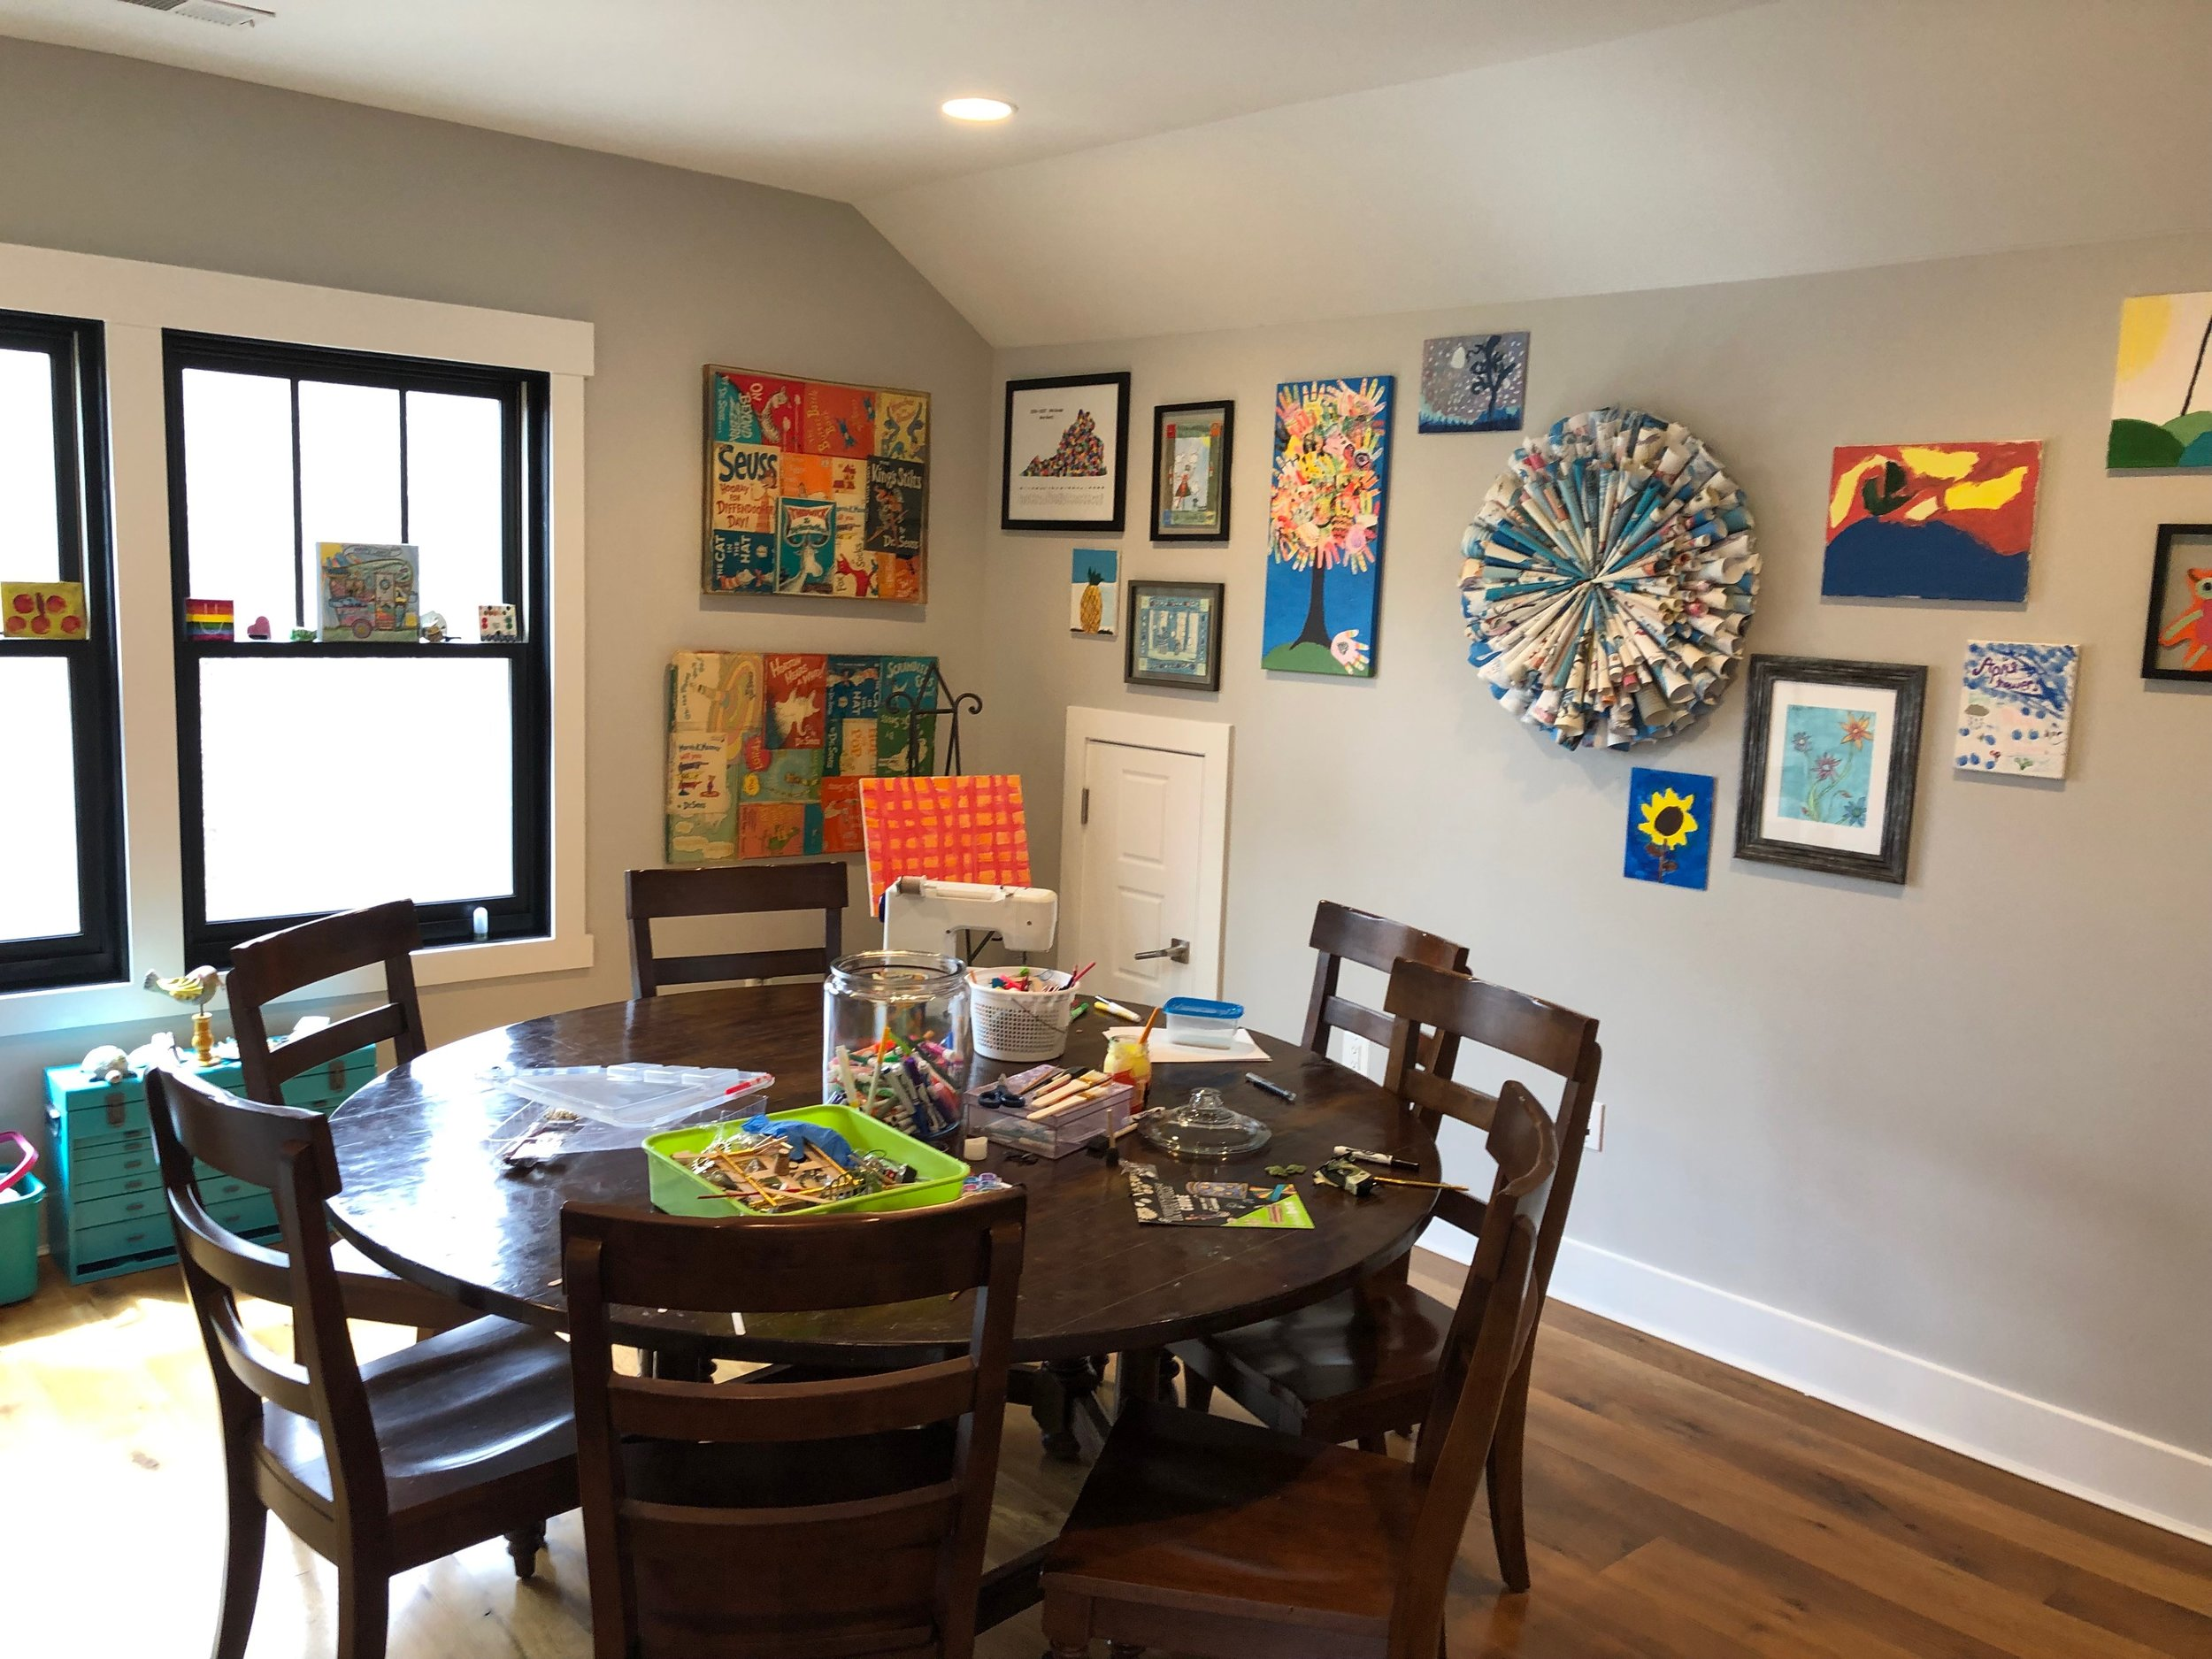 Kid's arts and craft room